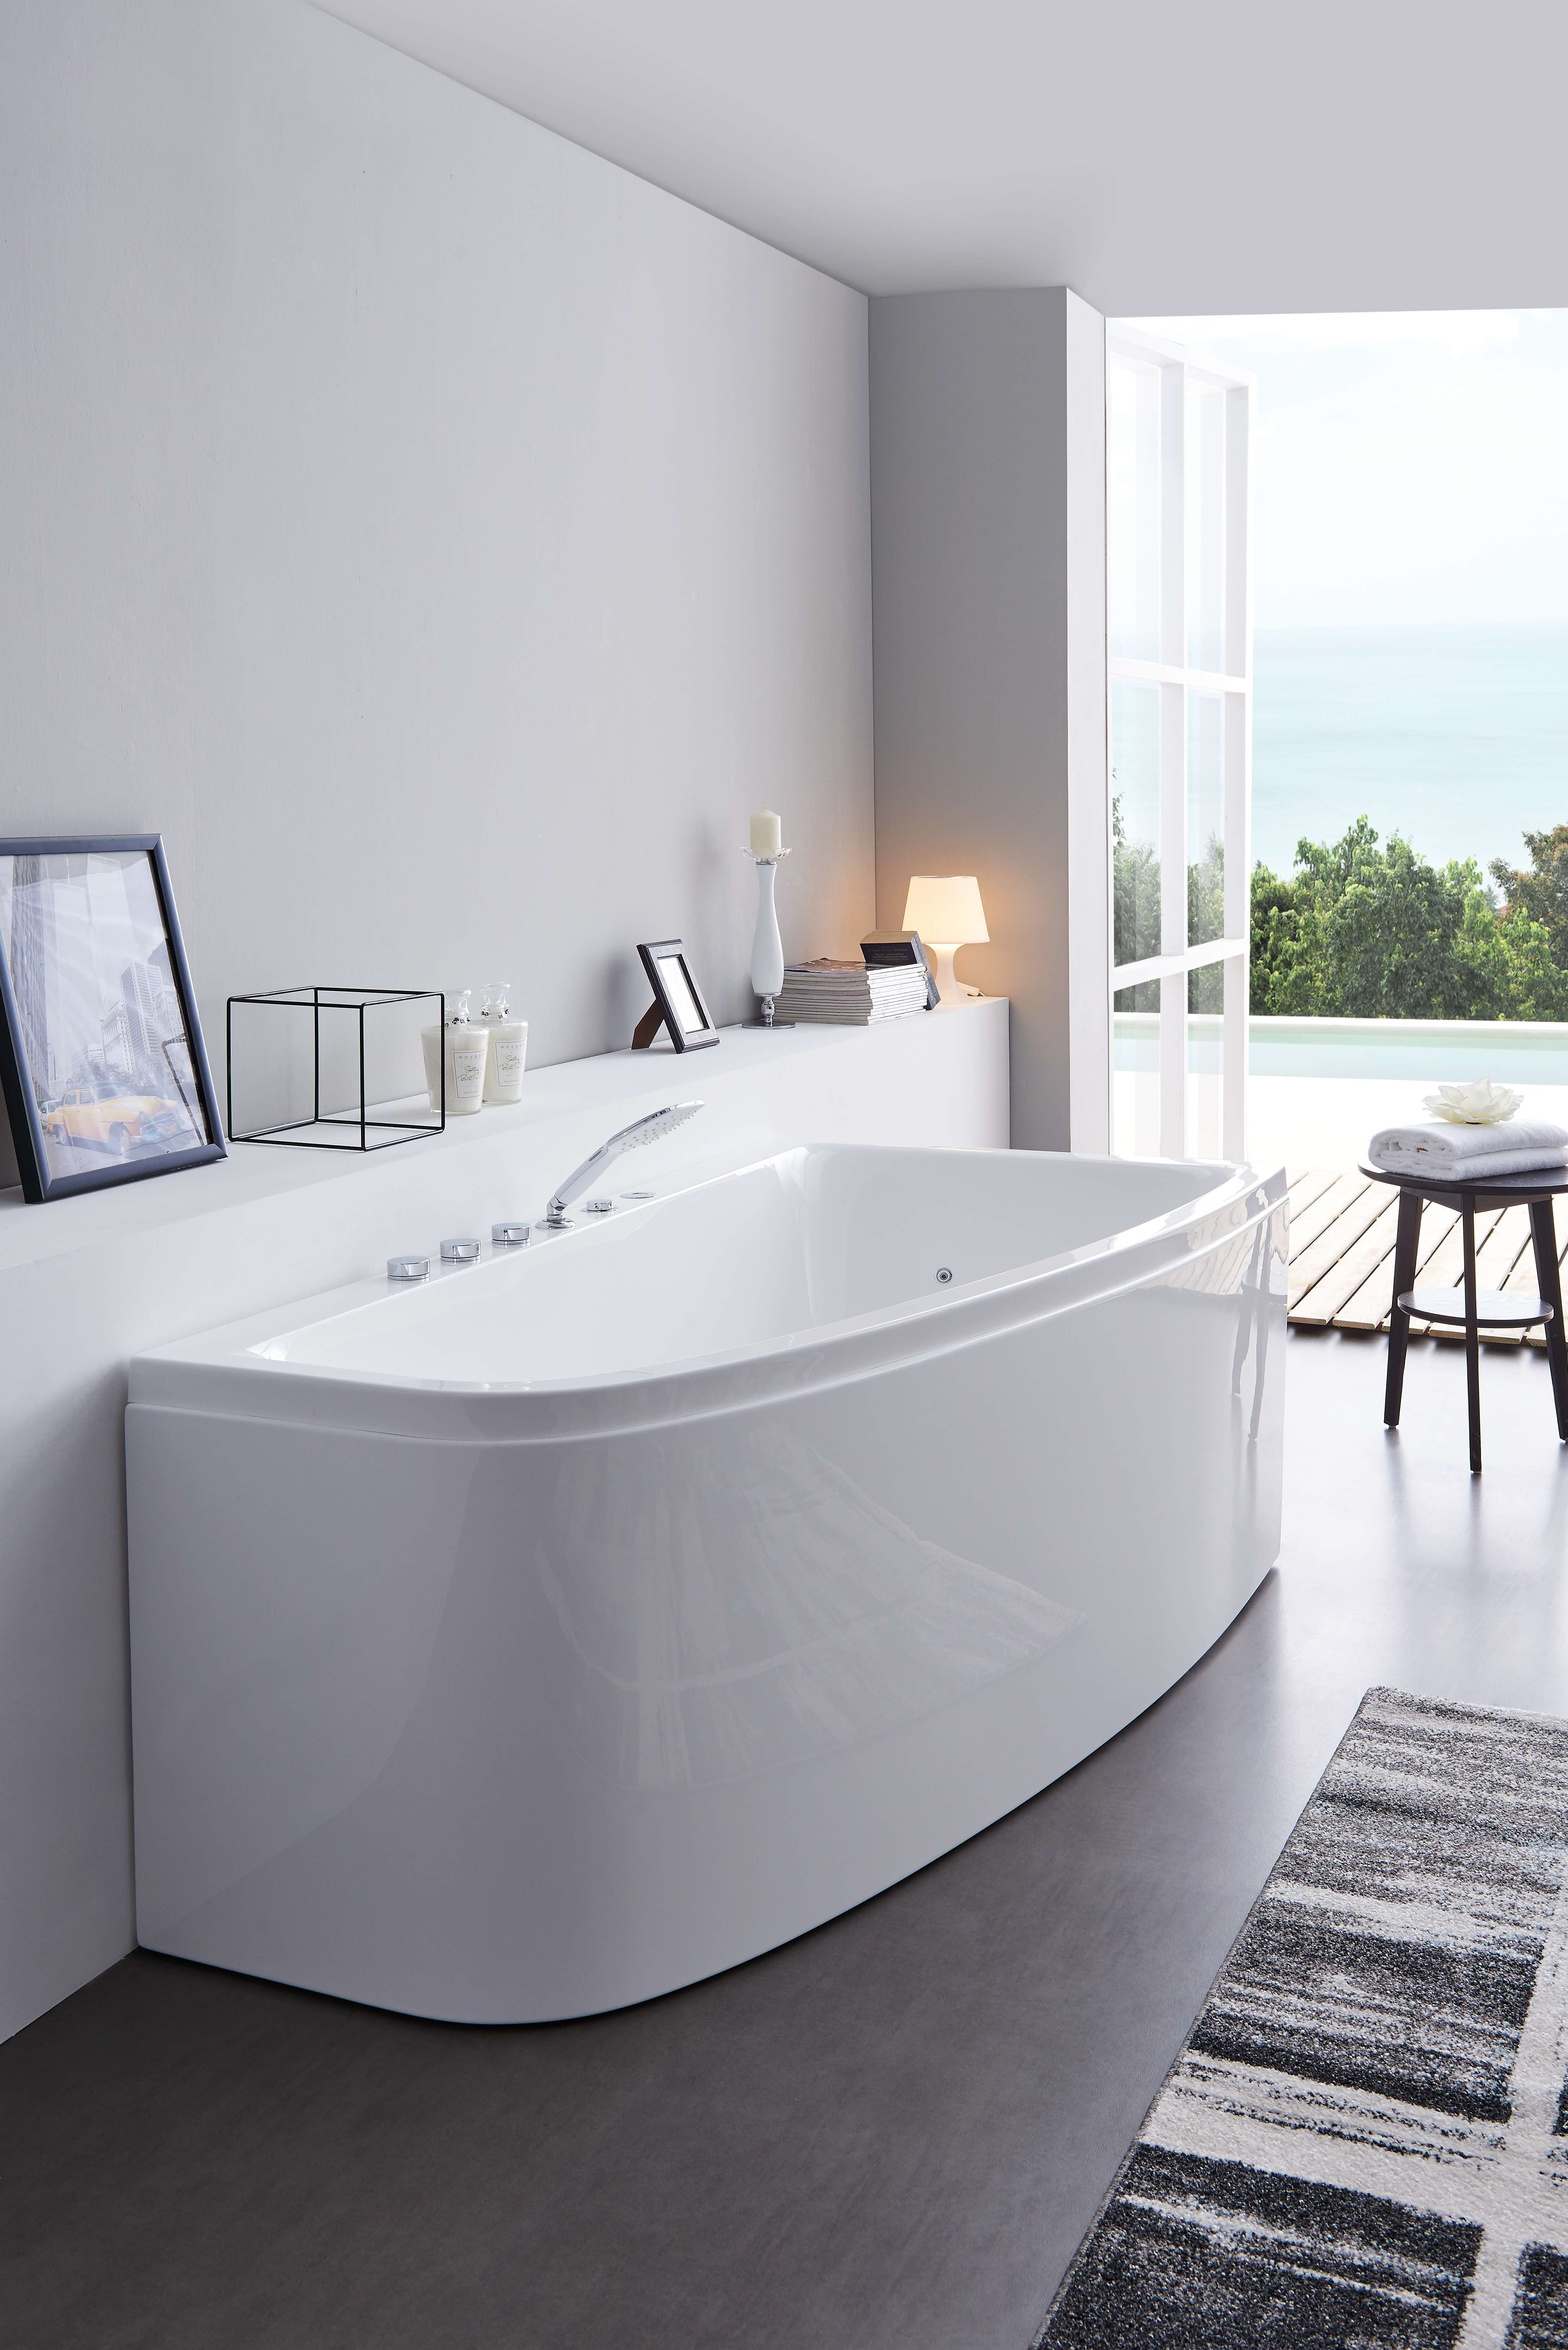 double best bathtub jacuzzi magic whirlpool person two most tub jetted